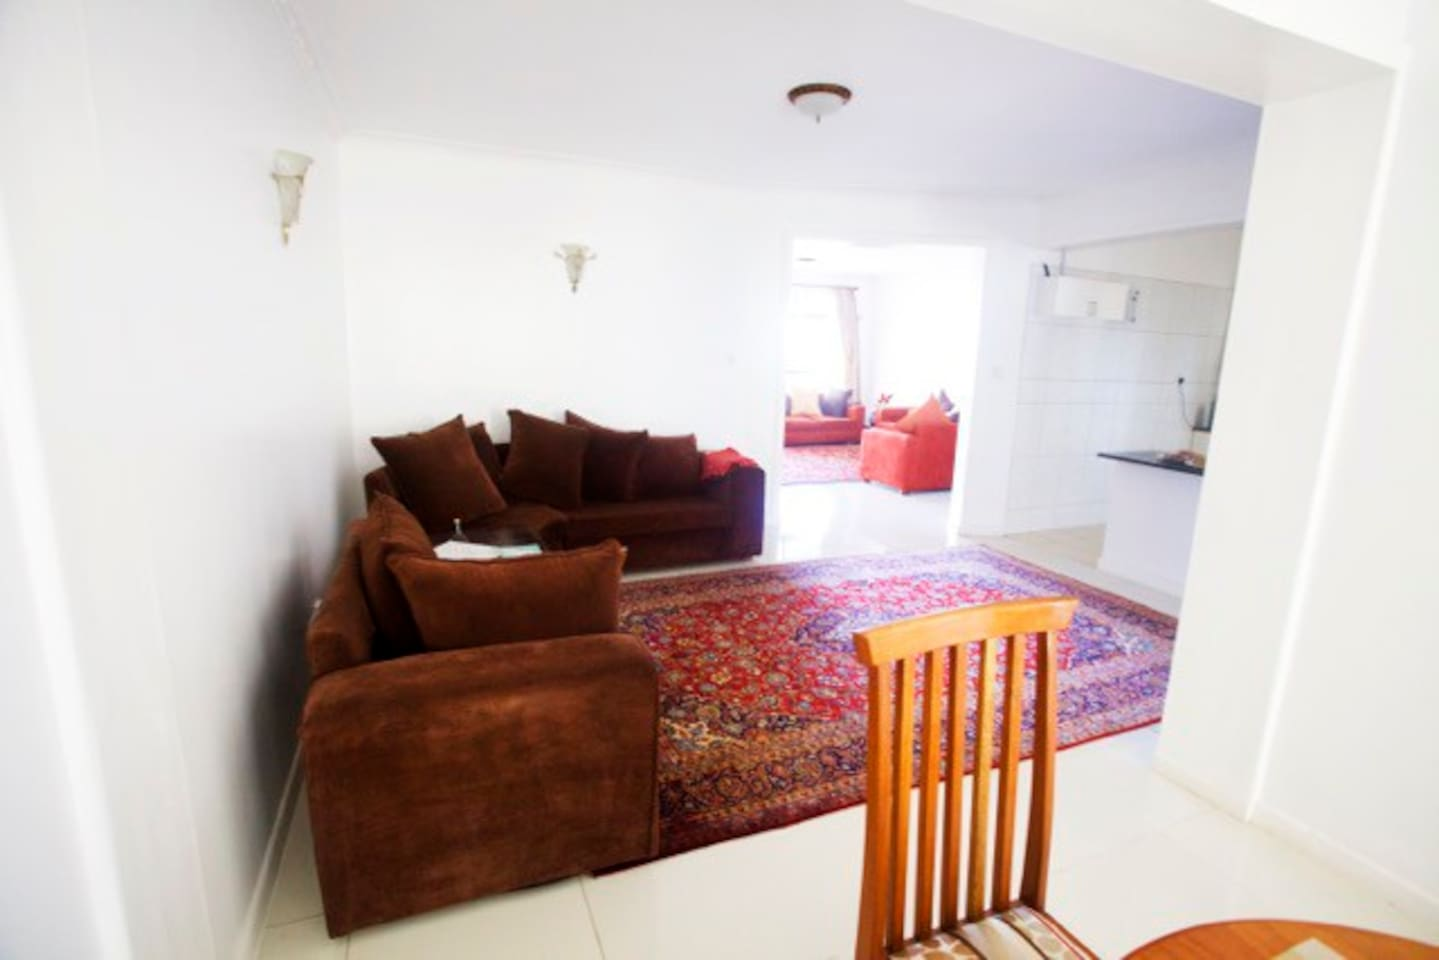 Spacious open plan setting with two living rooms